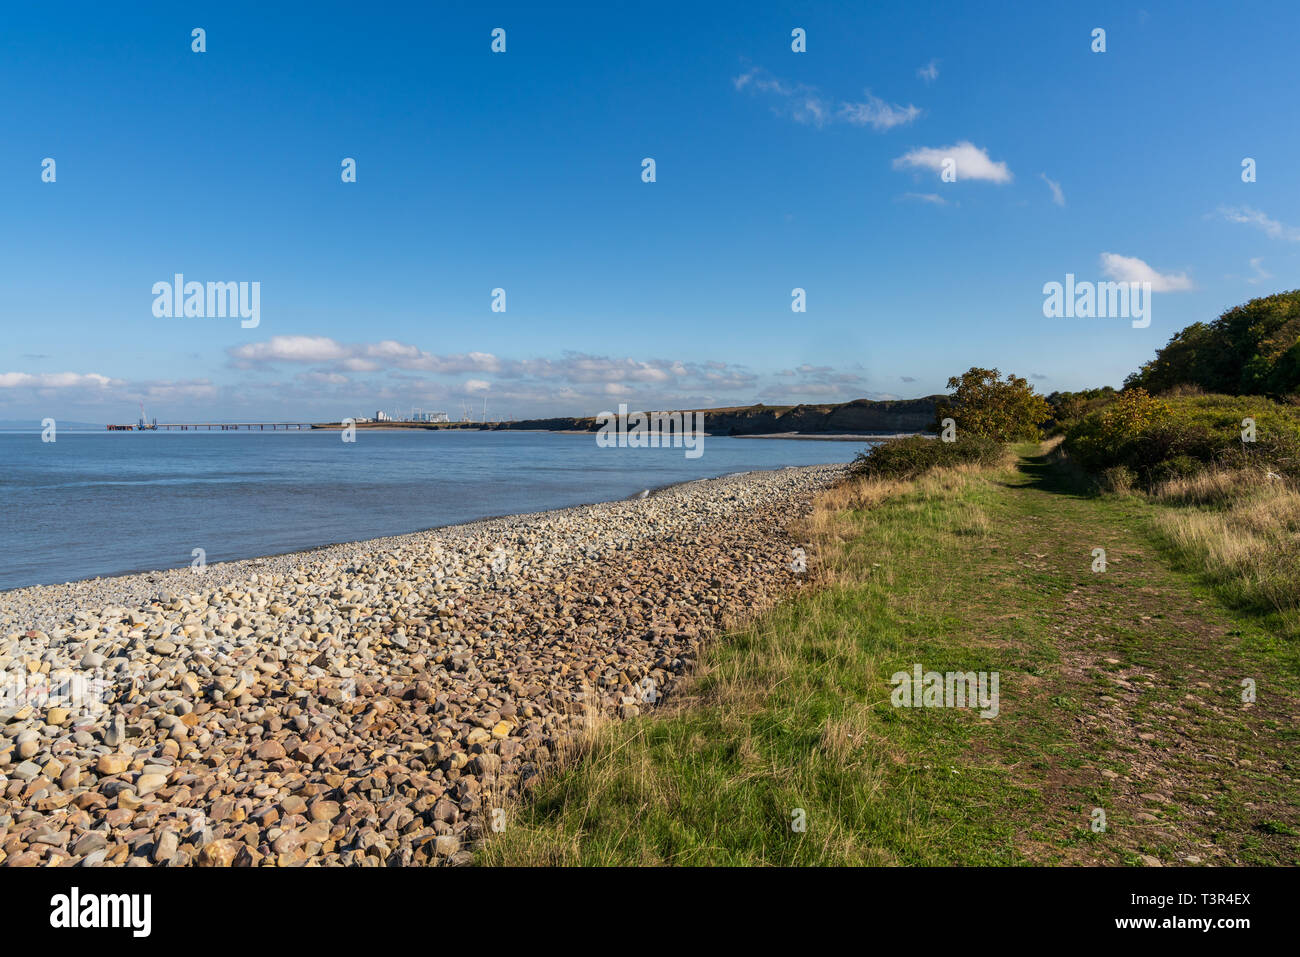 Lilstock Beach, Somerset, England, UK - October 04, 2018: Looking over the Bristol Channel with Hinkley Point Nuclear Power Station in the background - Stock Image